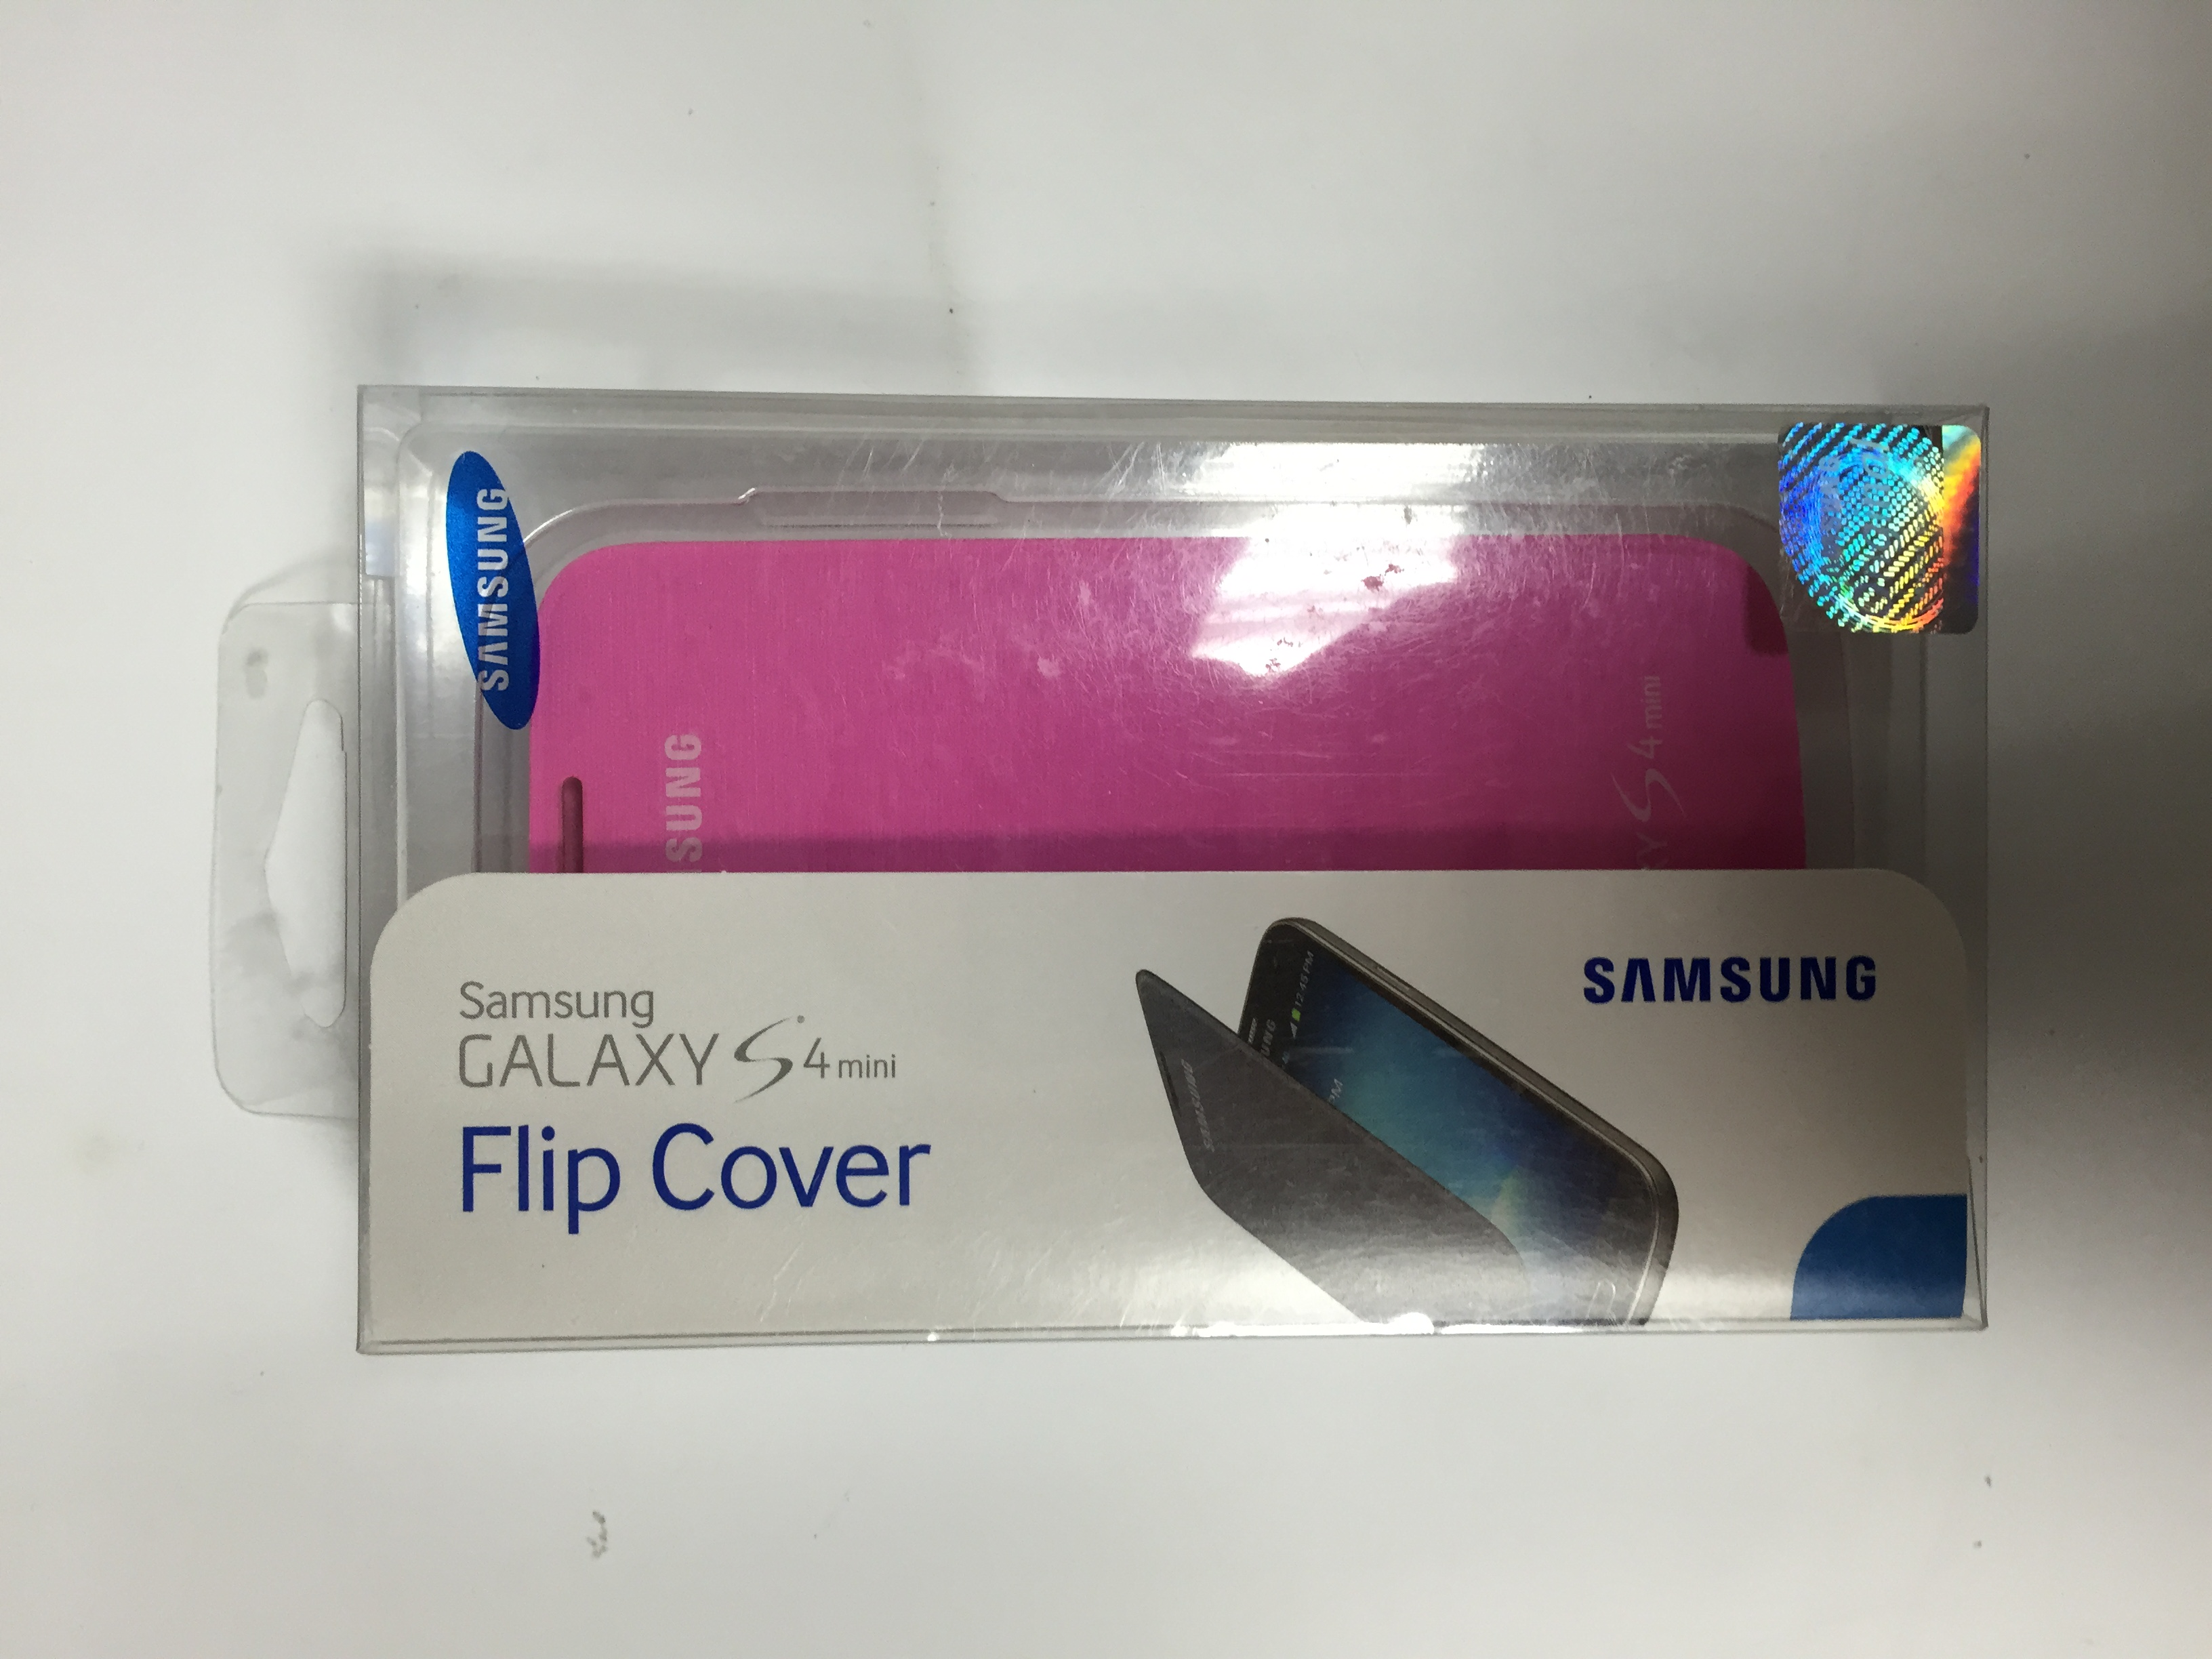 Samsung Flip Cover Case for Samsung Galaxy S4 Mini